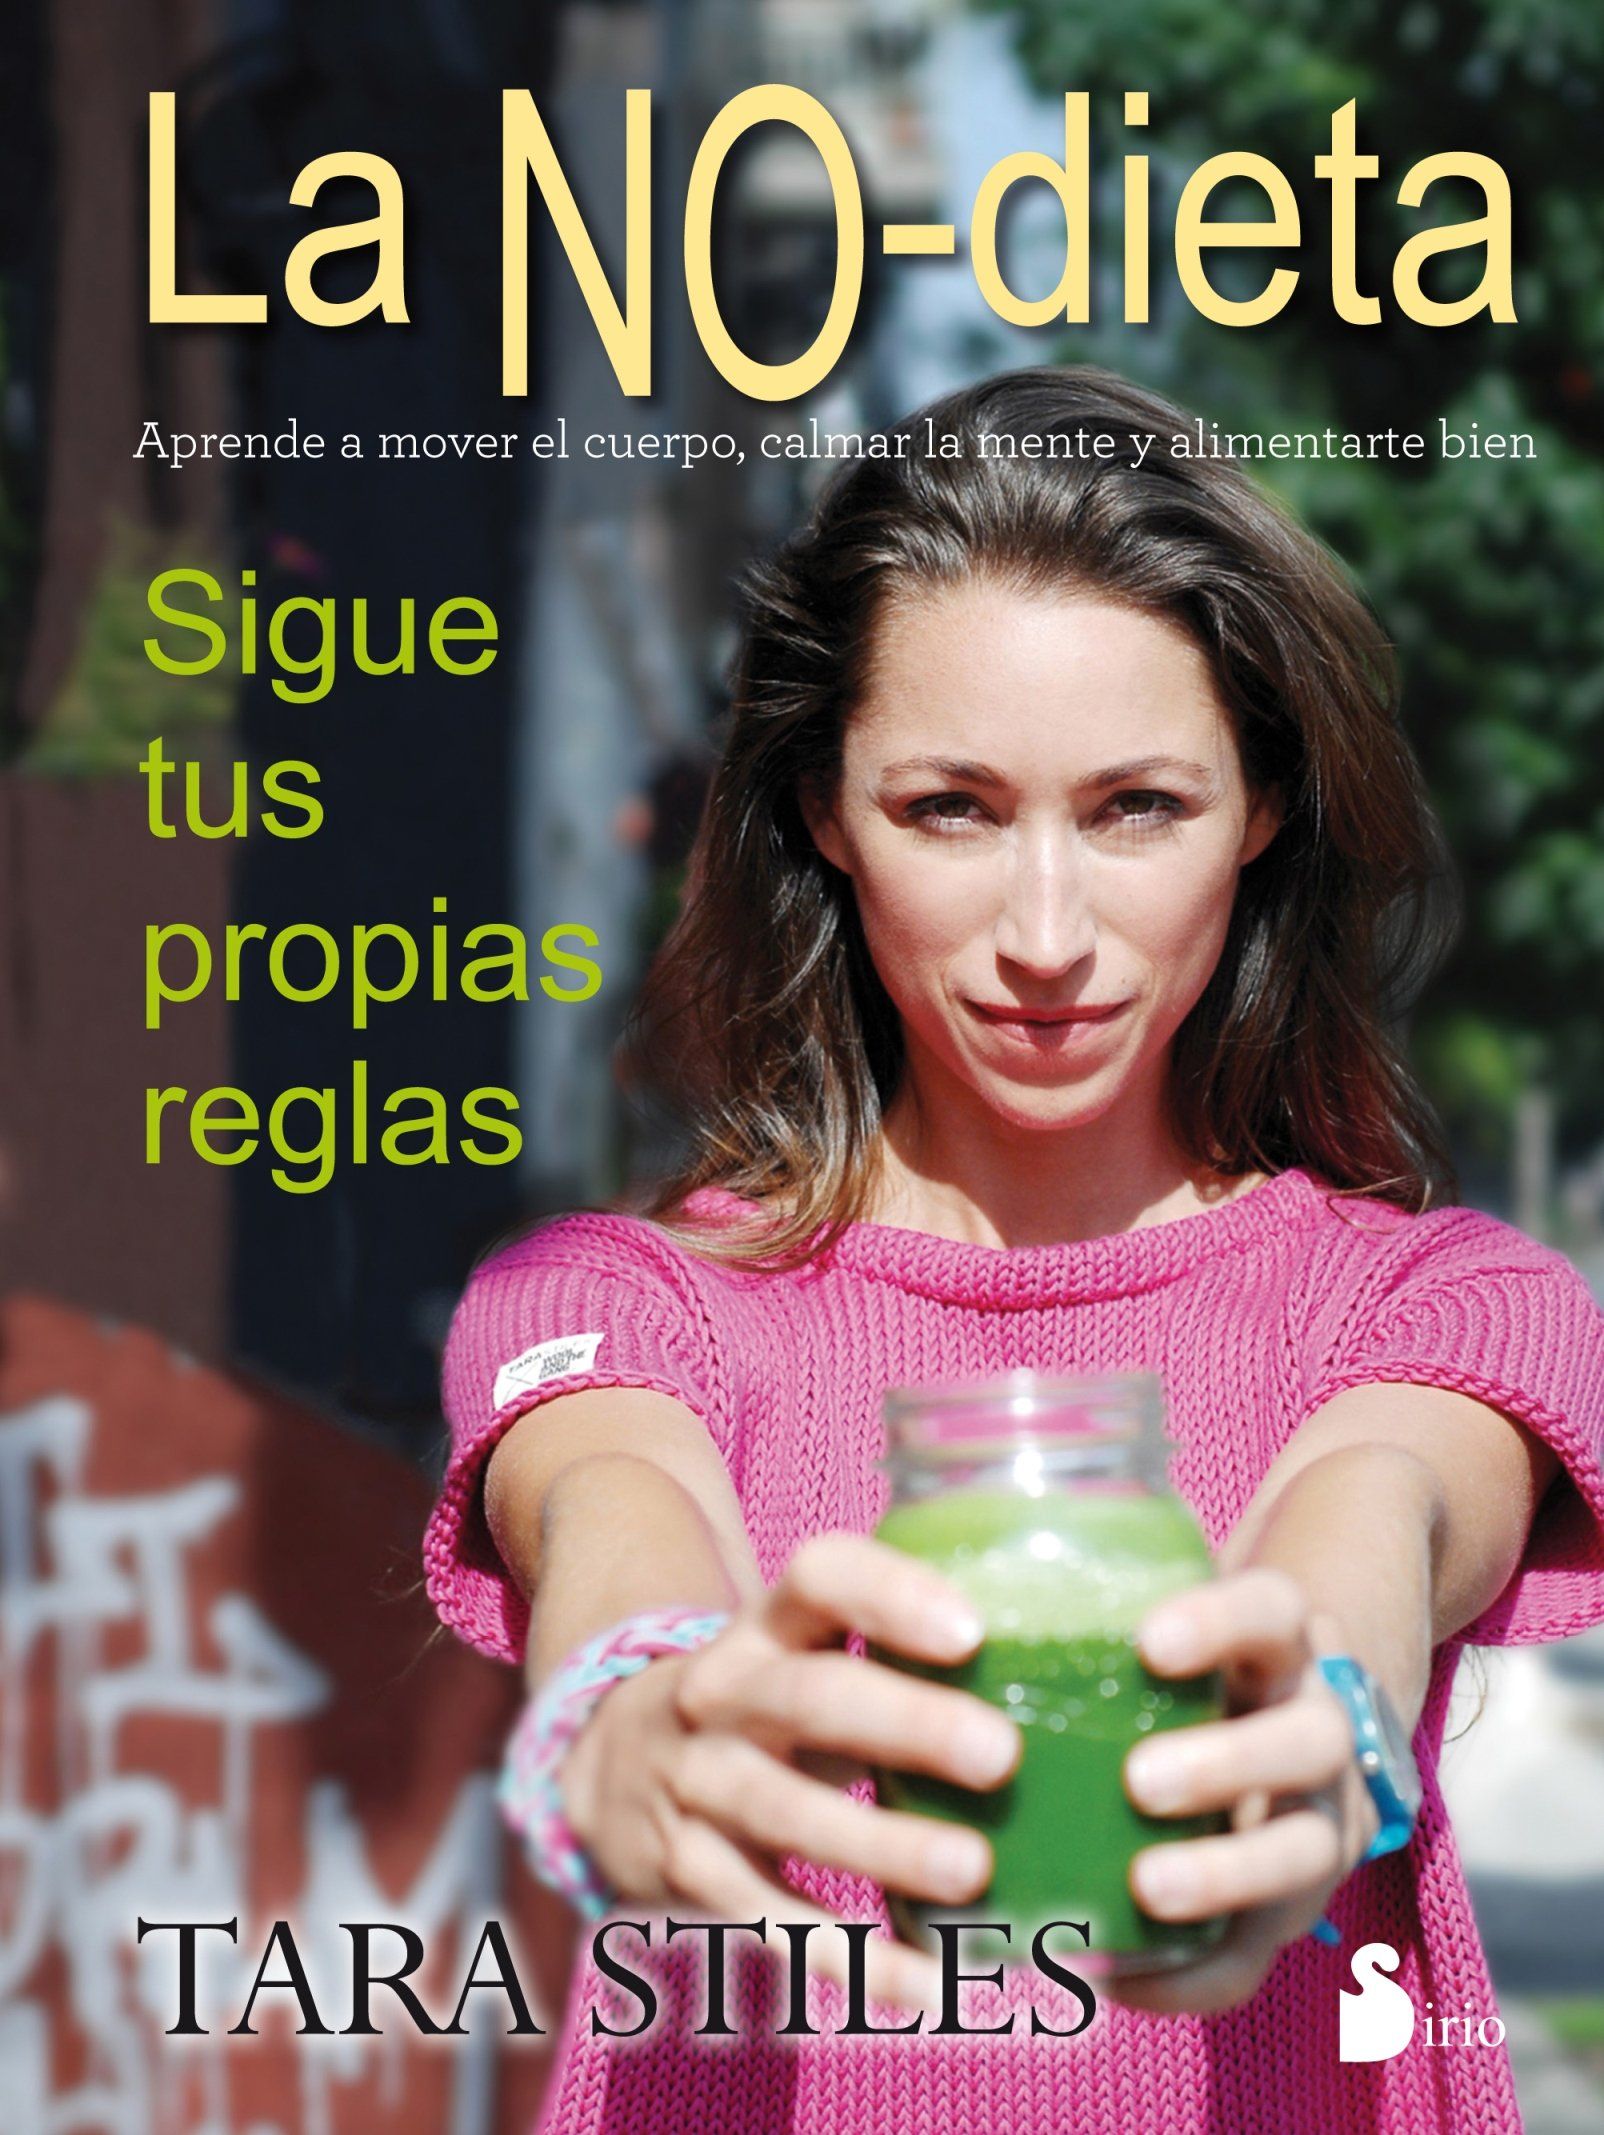 La no dieta (Spanish Edition) (Spanish) Paperback – April 21, 2016